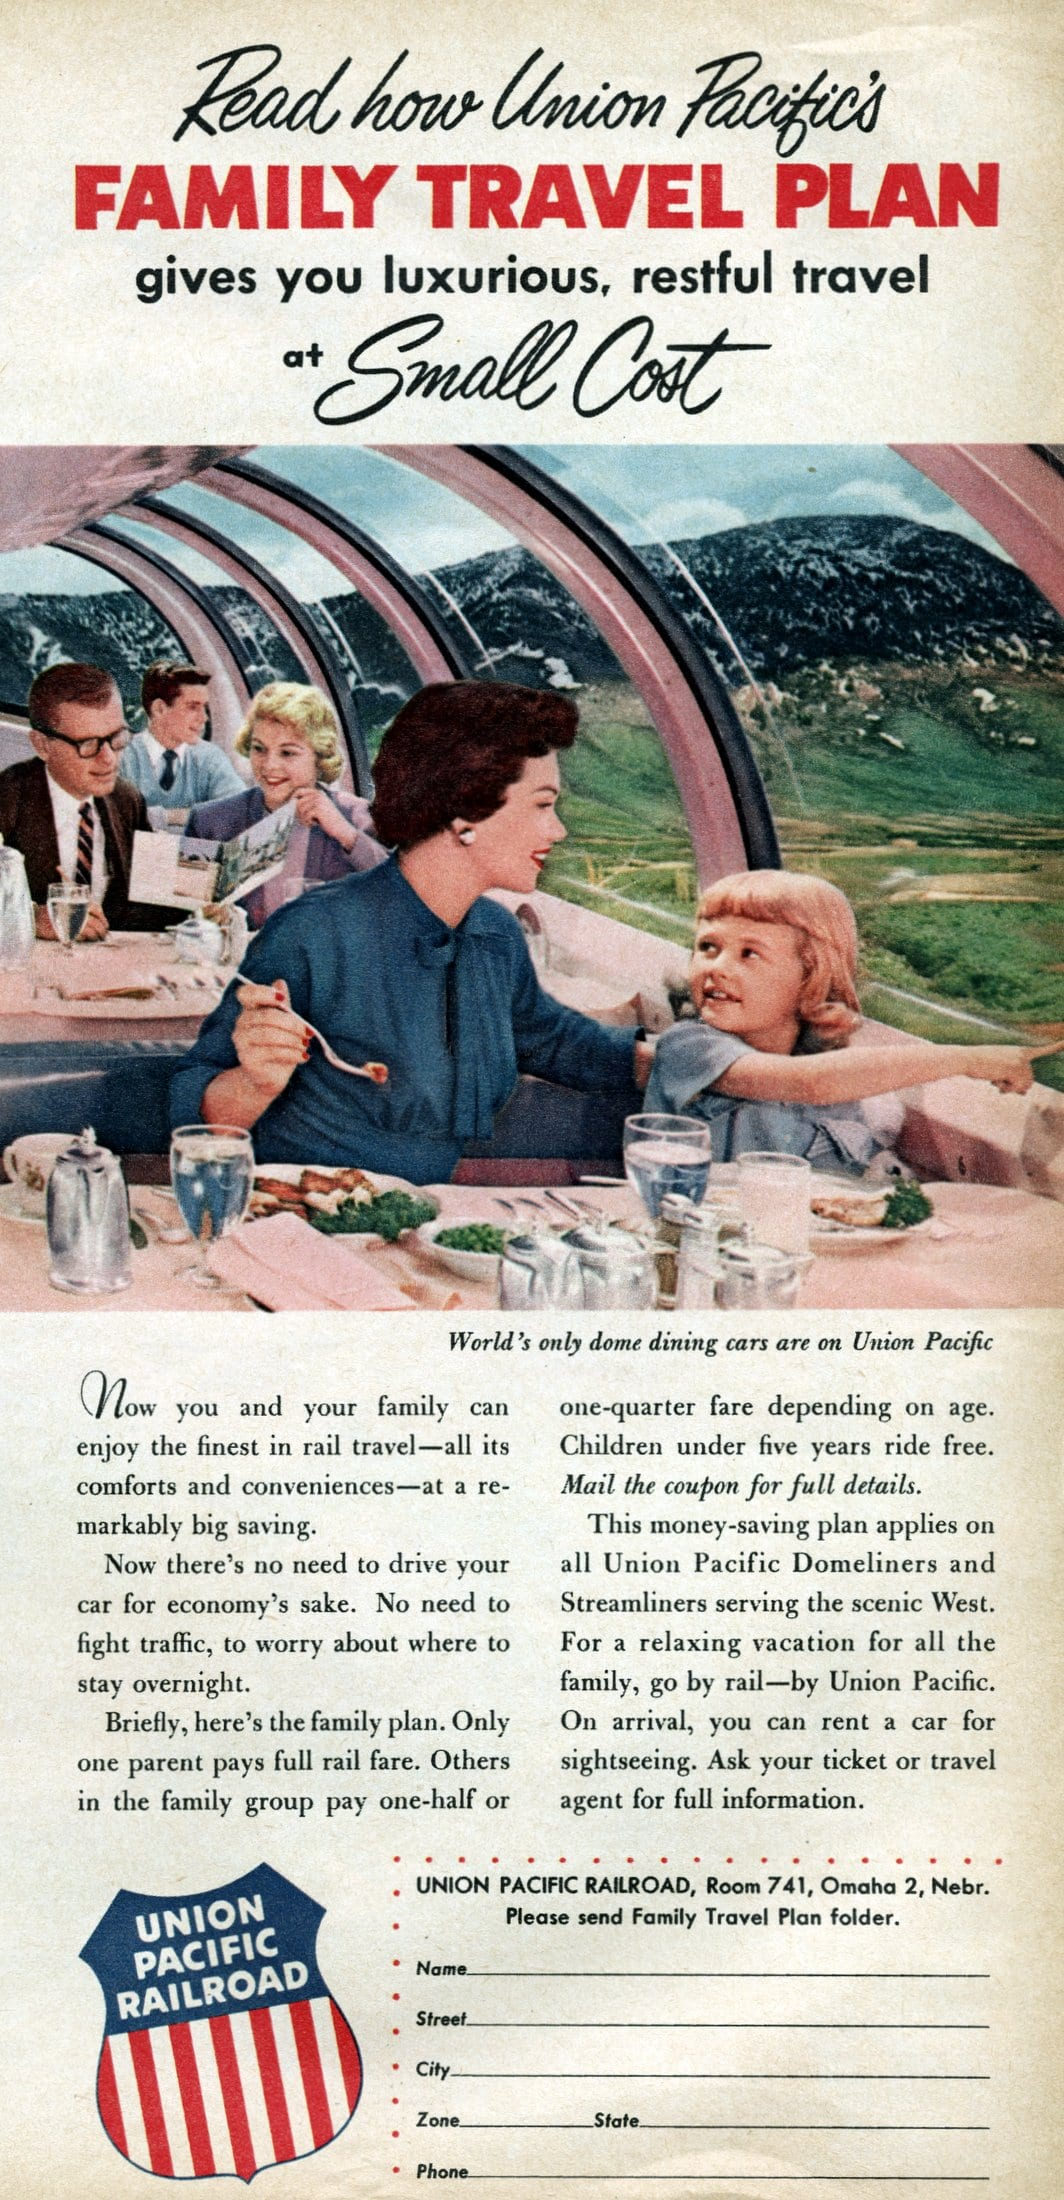 Union Pacific's Family Travel Plan gives you luxurious, restful travel (1956)